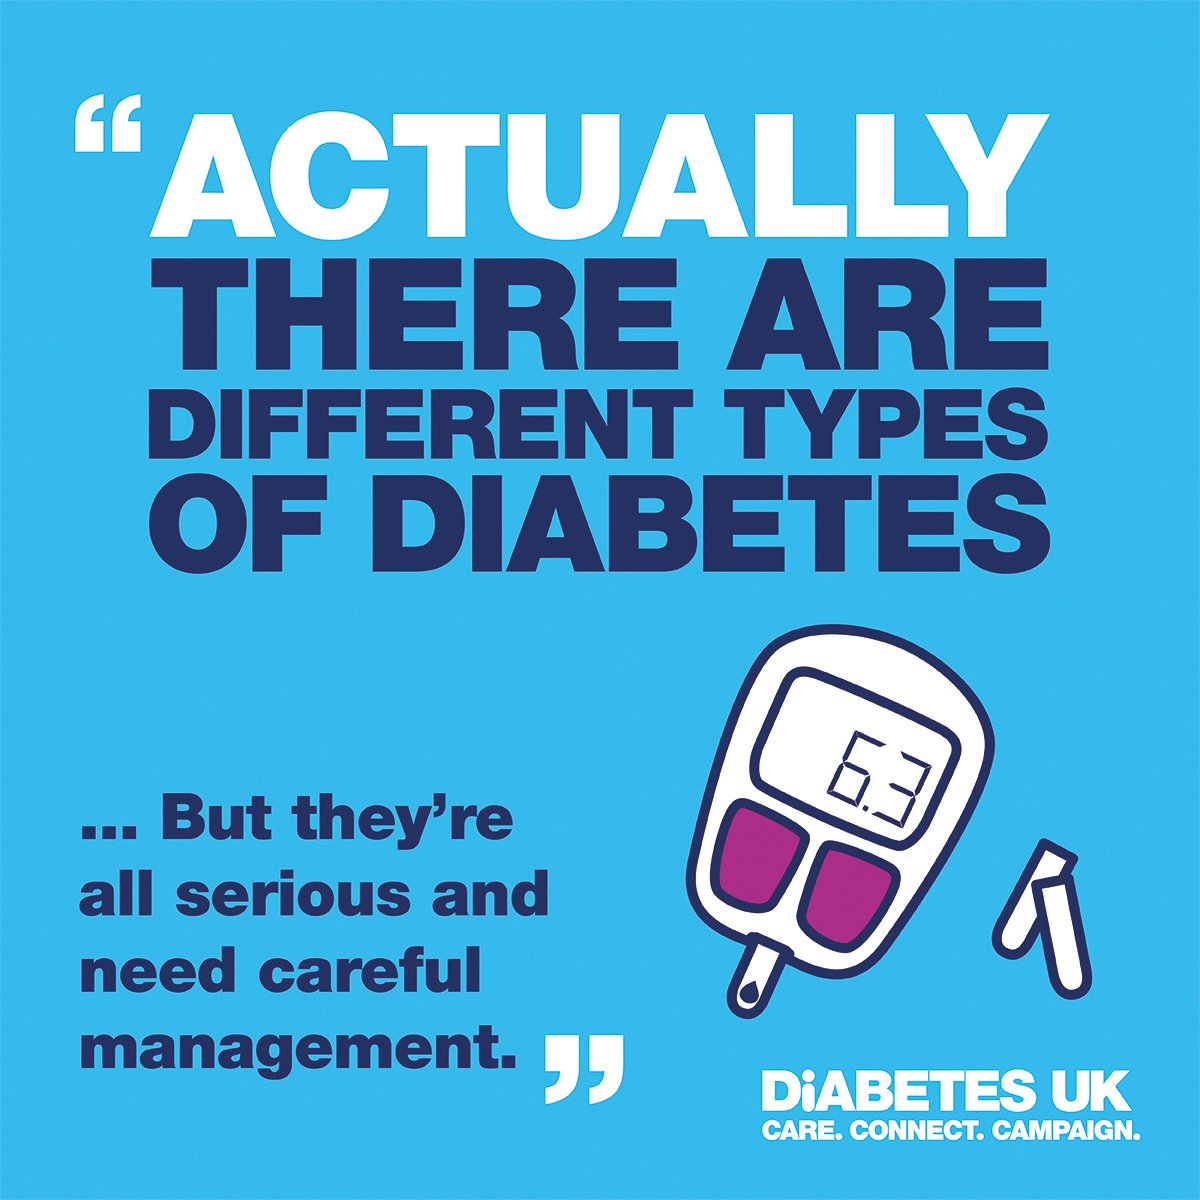 It's #DiabetesWeek and I'm supporting @DiabetesUK to set the record straight about diabetes https://t.co/QuXYyeaWnK https://t.co/QnArhTE8UB